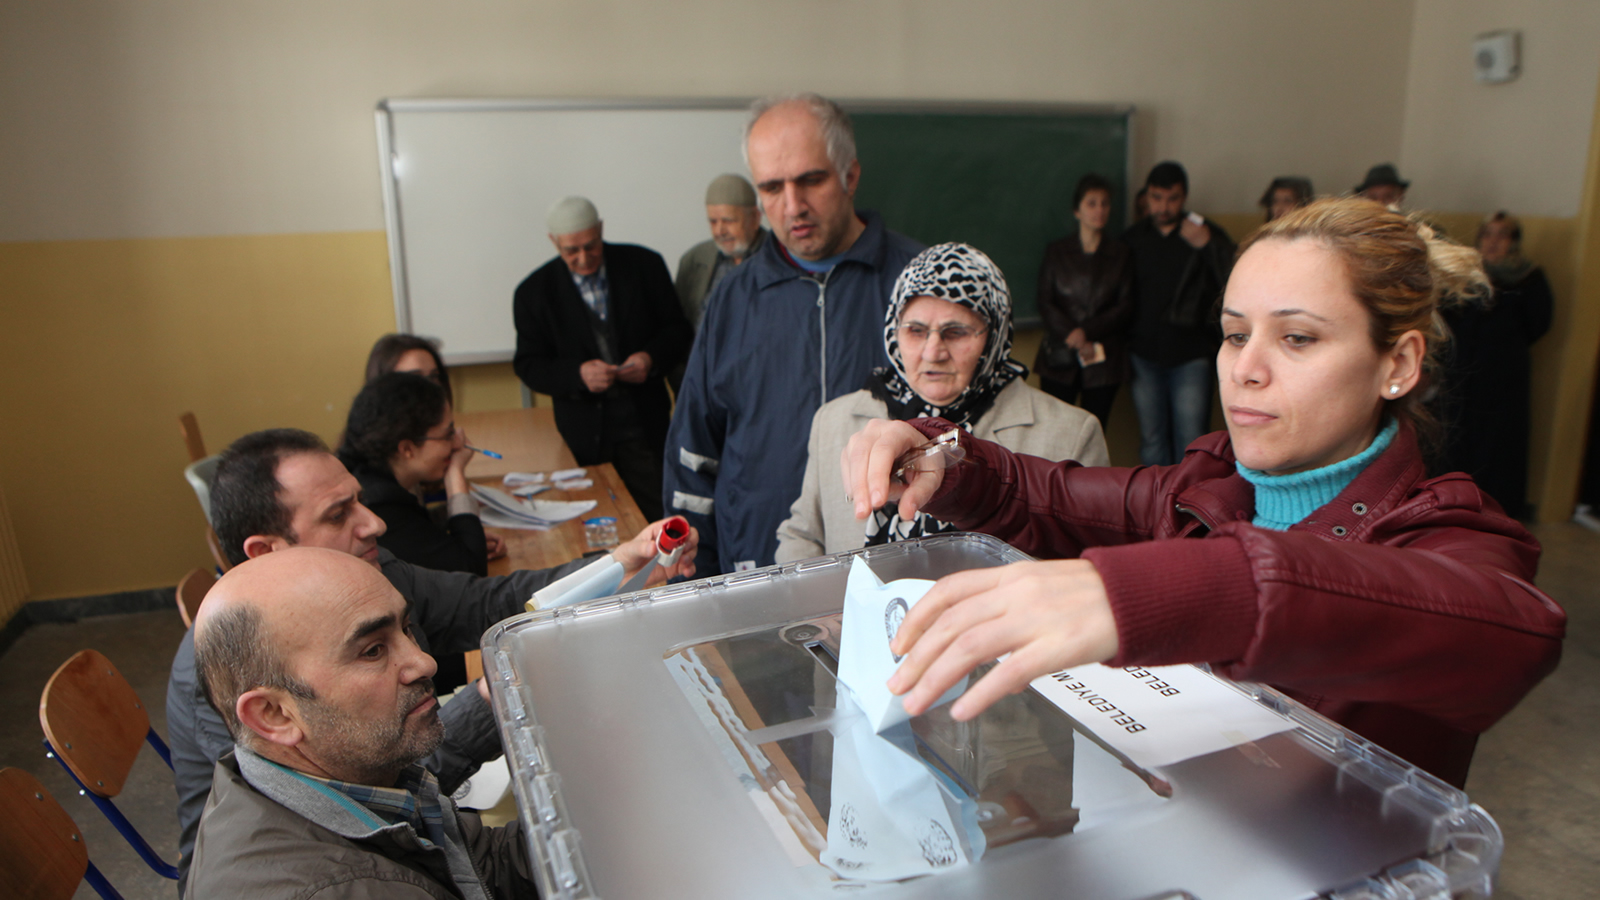 Woman Putting Vote in Voting Box in Turkey